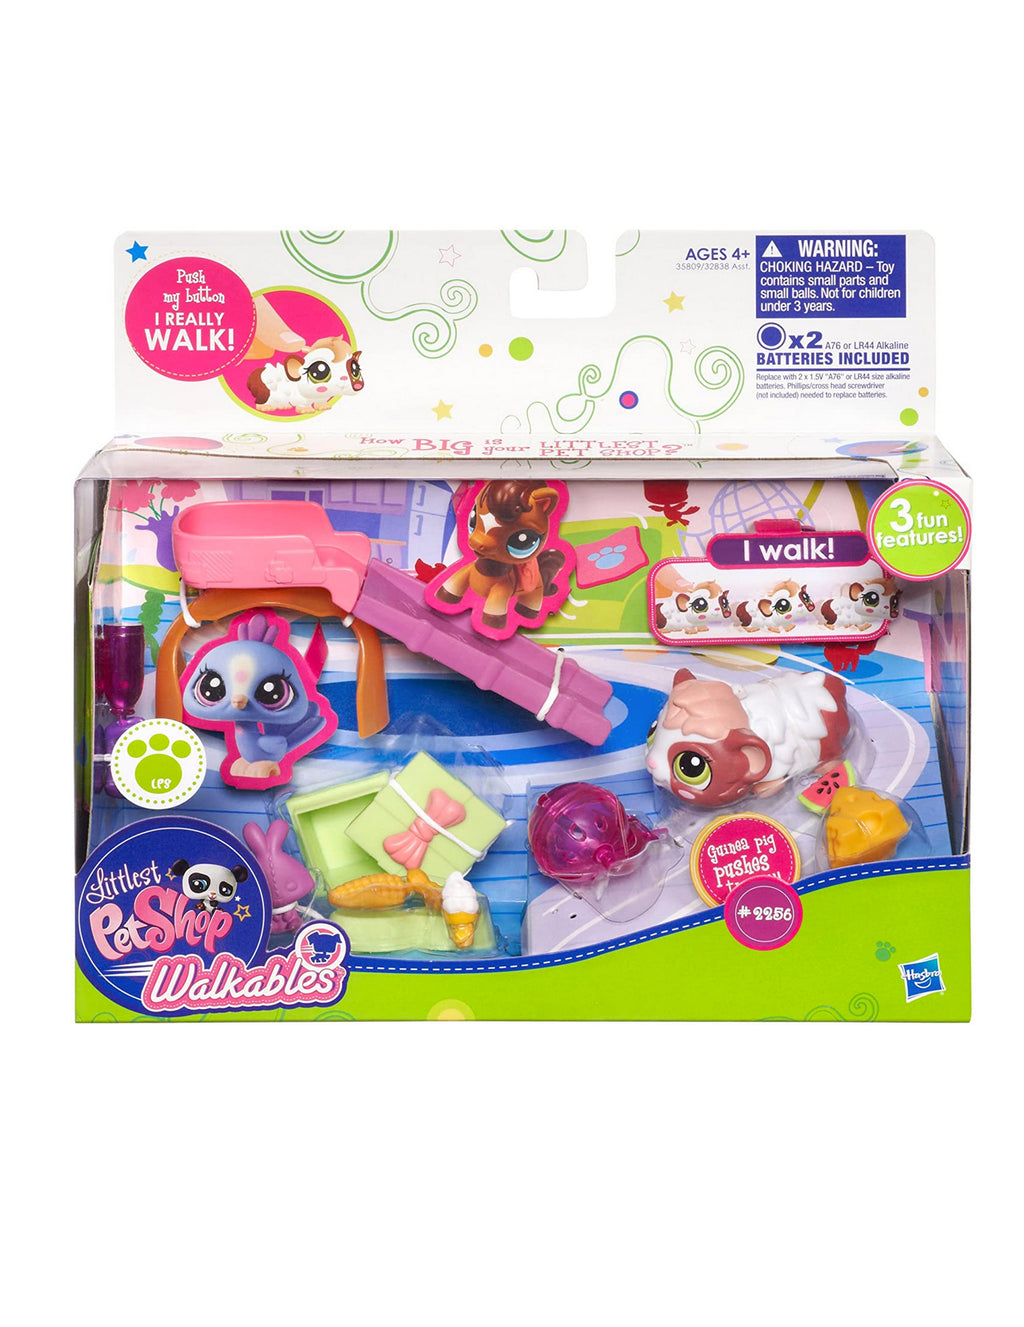 Littlest Pet Shop, Walkables Themed Pack, Guinea Pig #2256